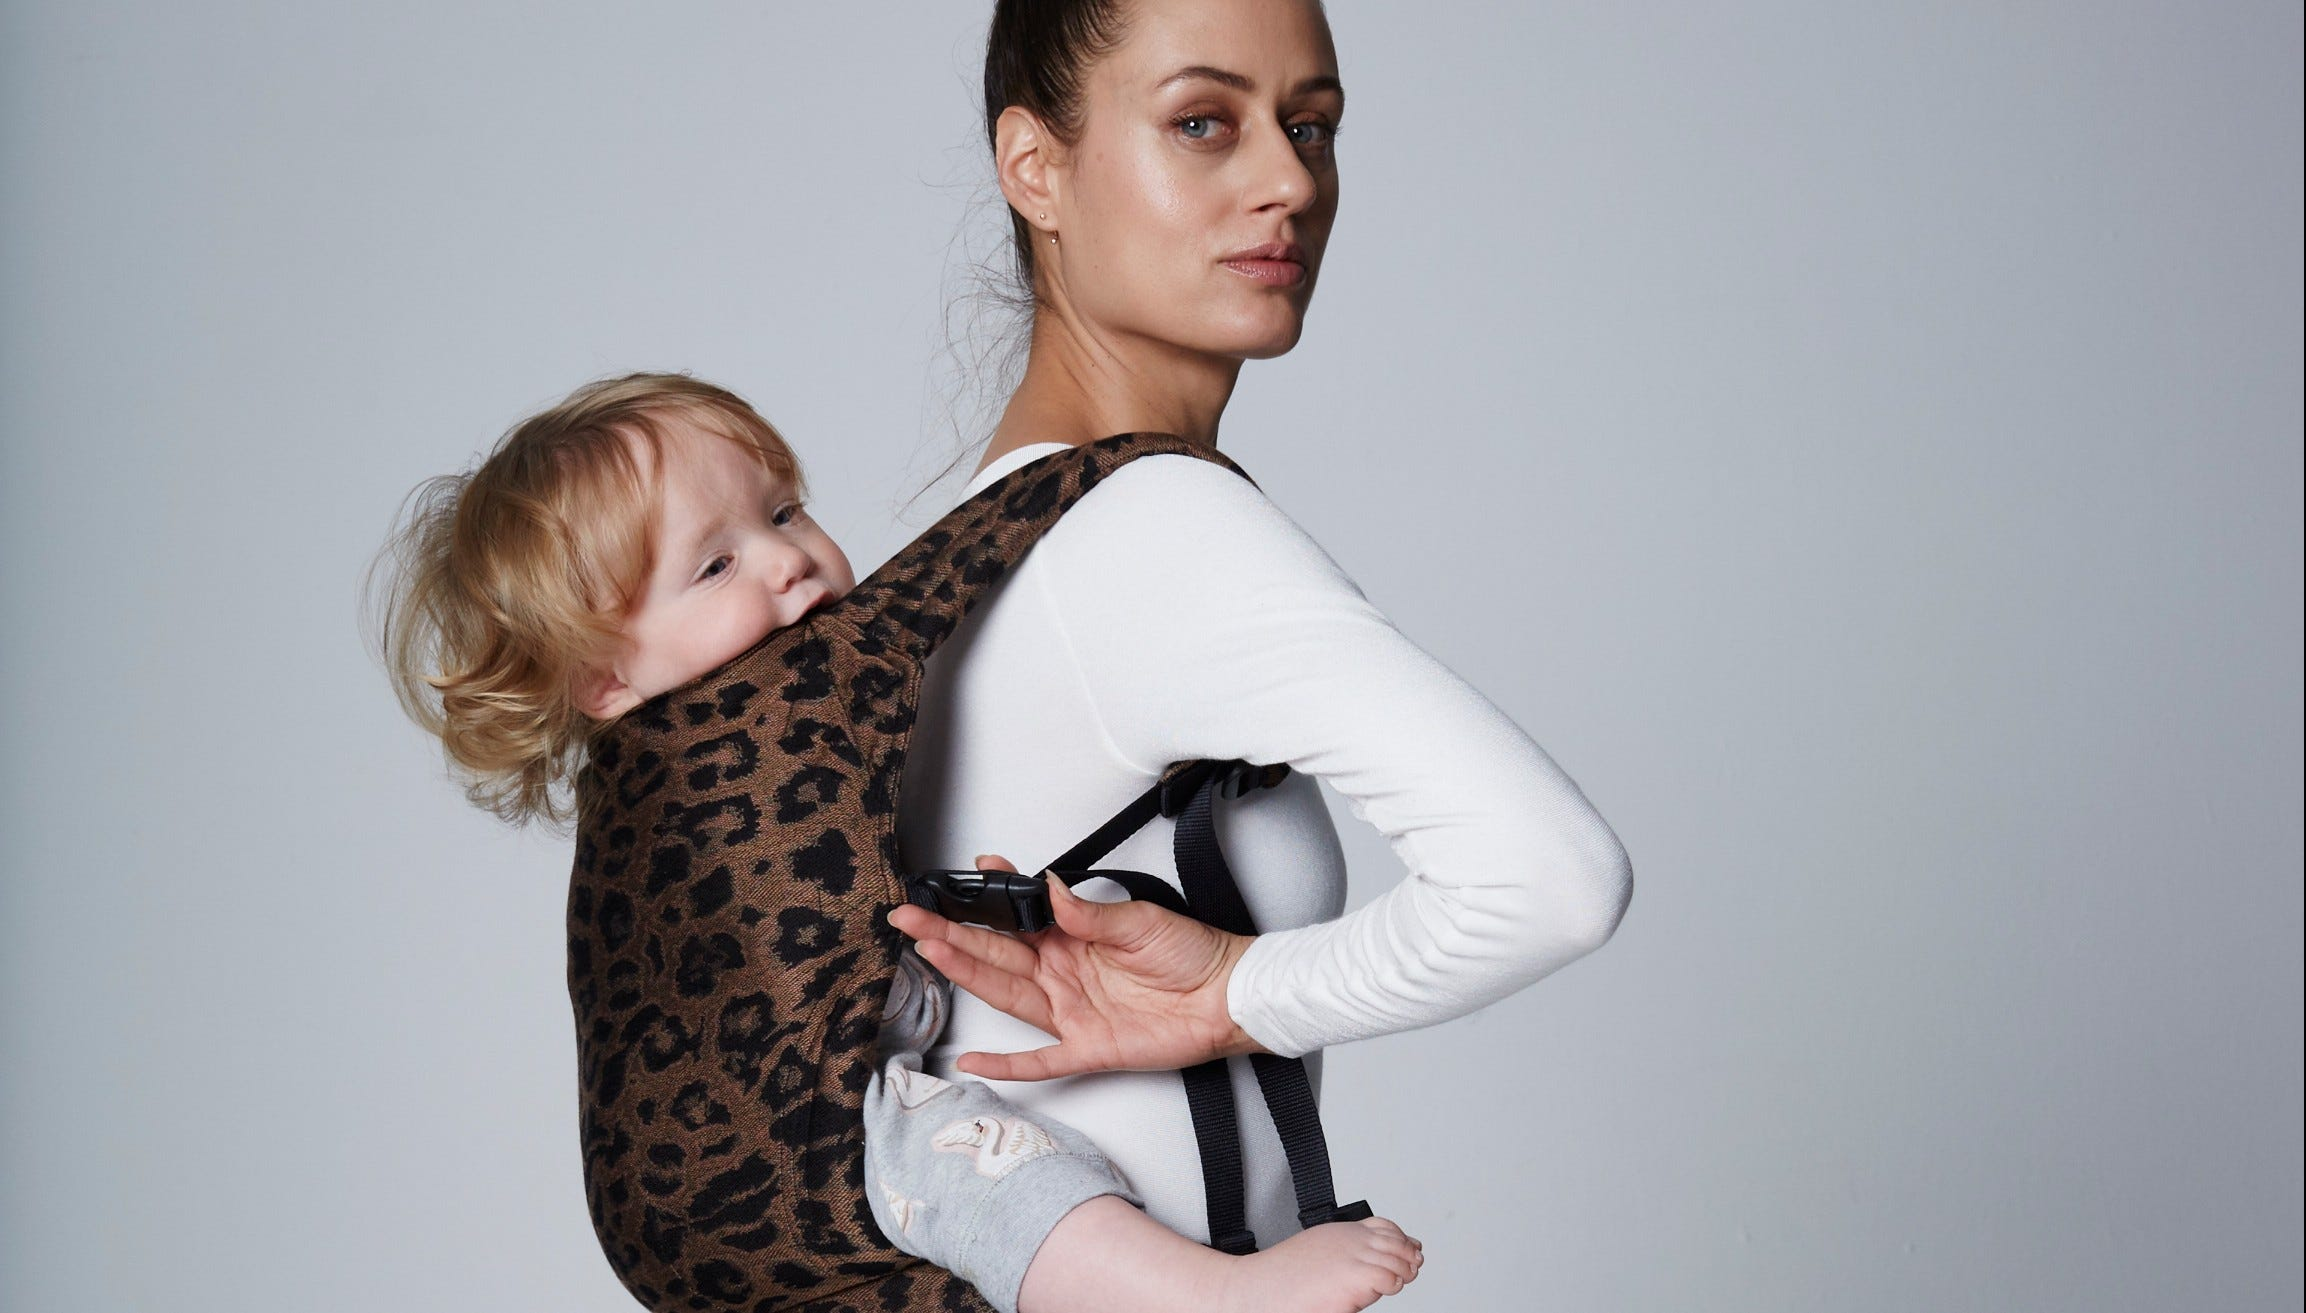 A woman carrying baby in the Artipope Zeitgeist carrier.